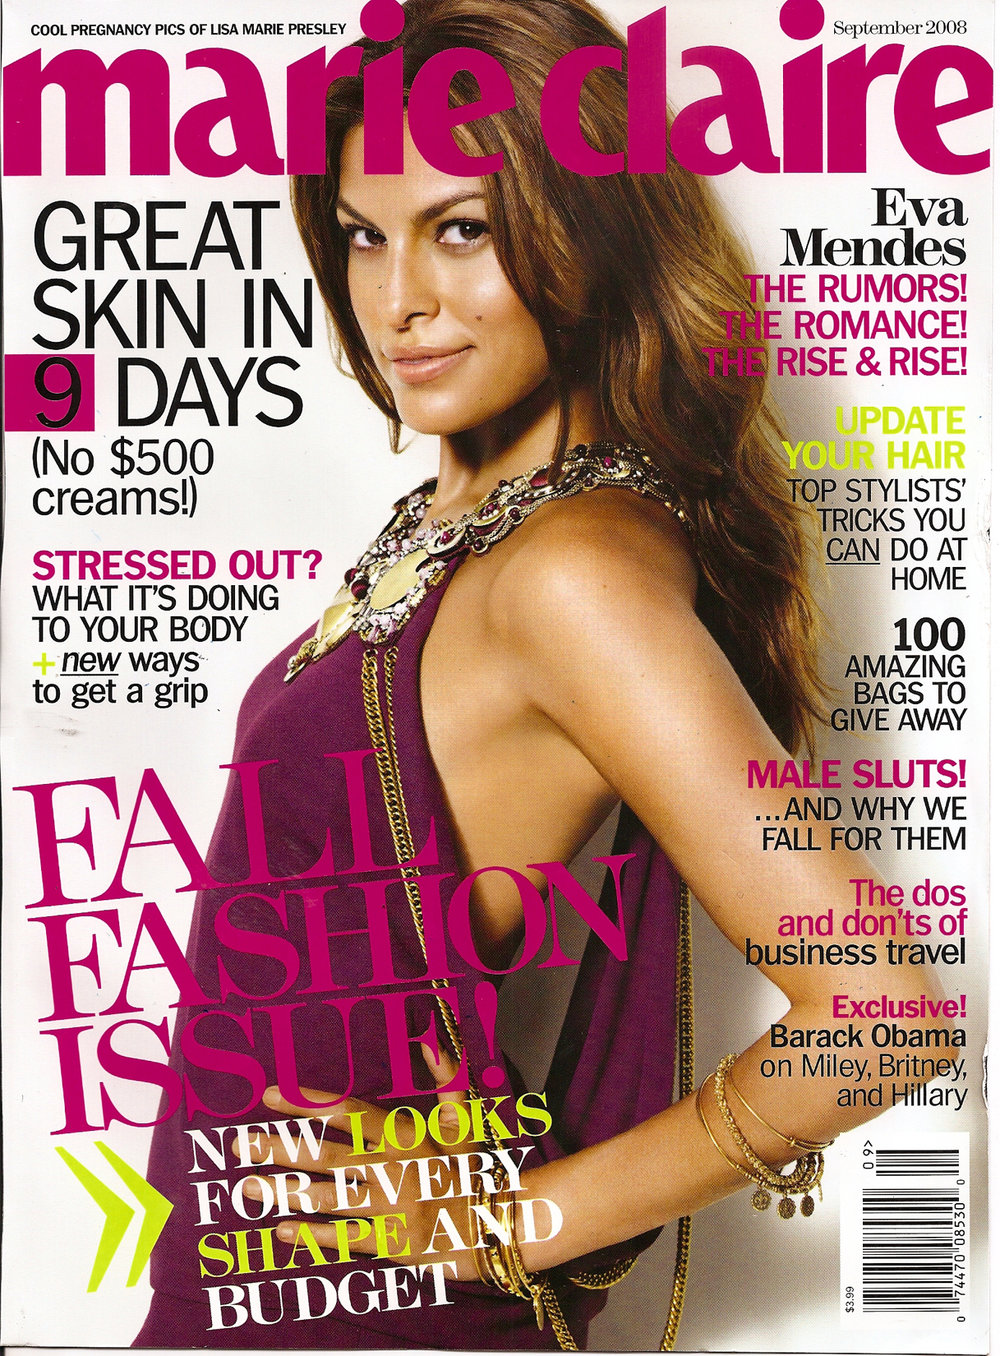 Marieclaire_September2008_1.jpg